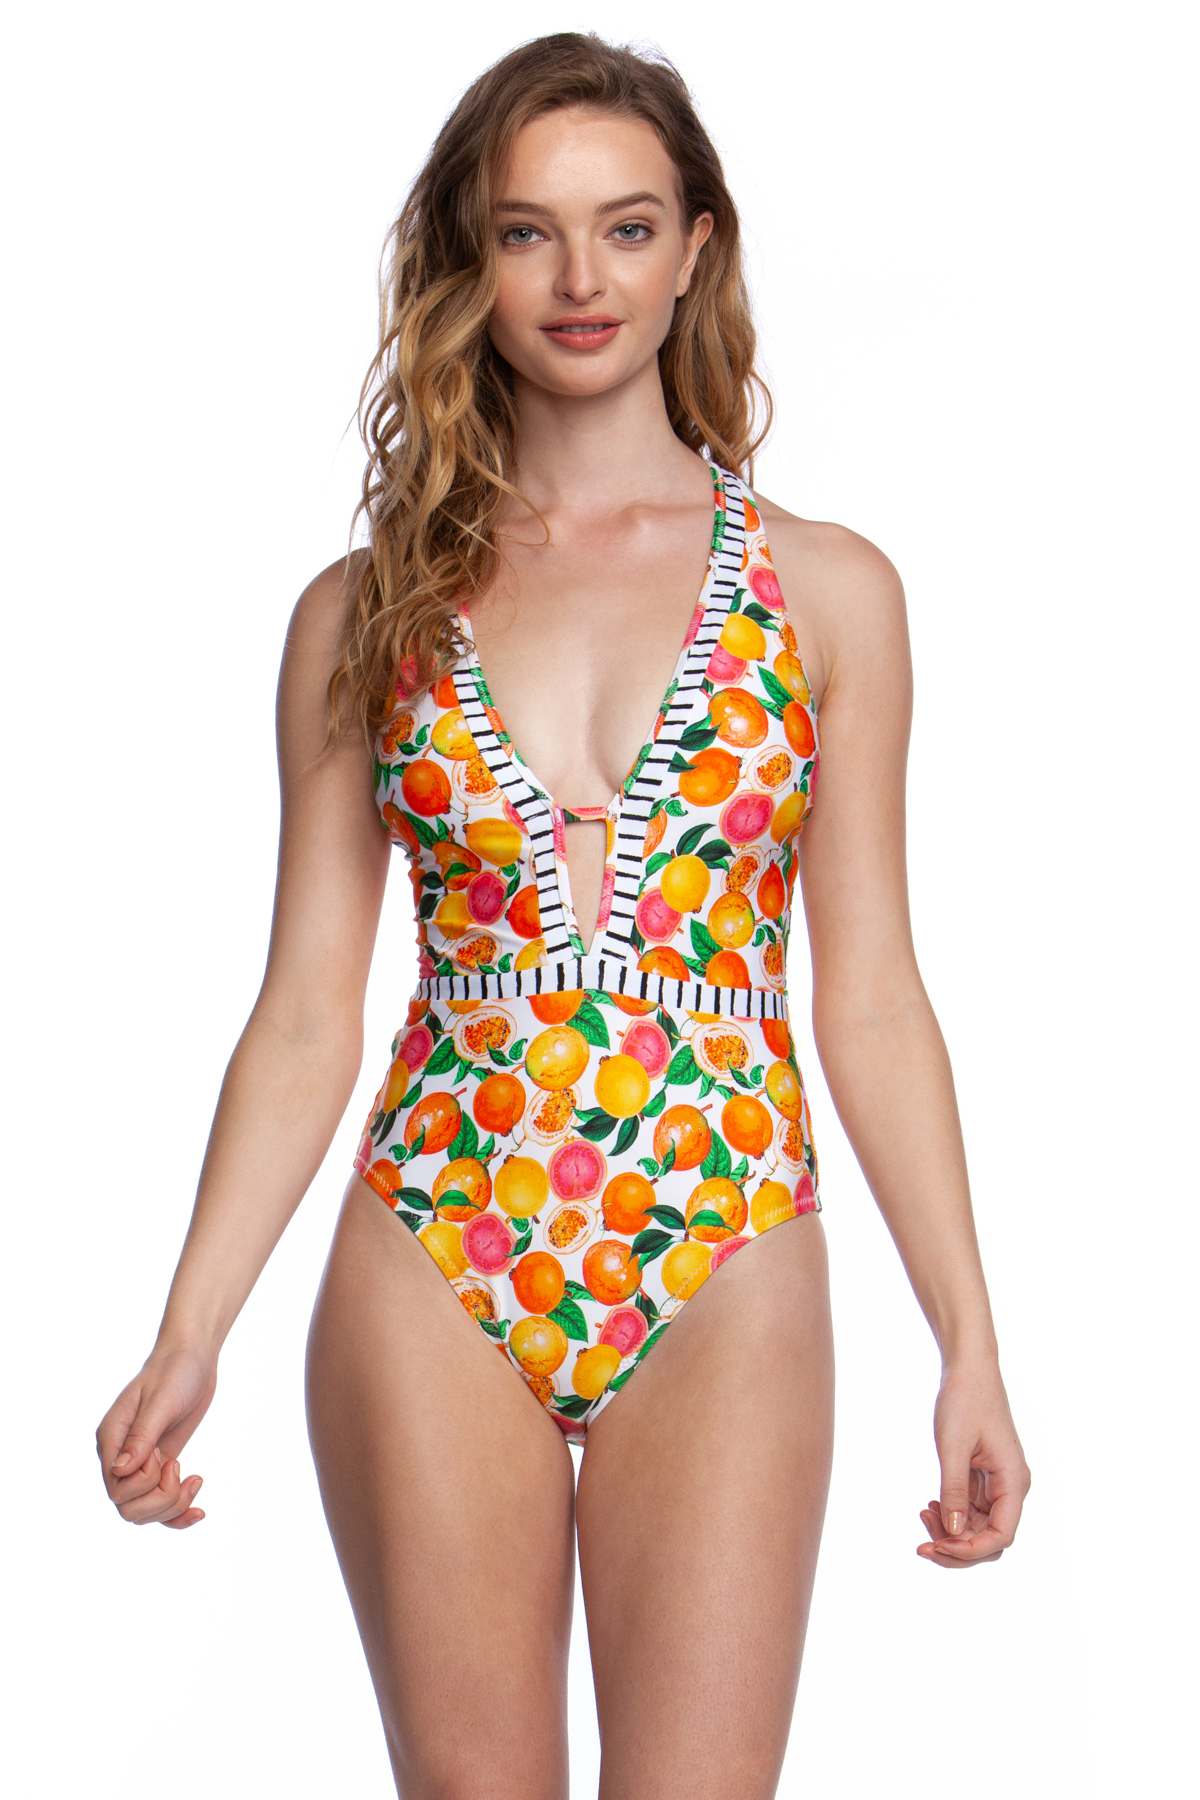 Goddess Plunge One Piece Swimsuit - Multi